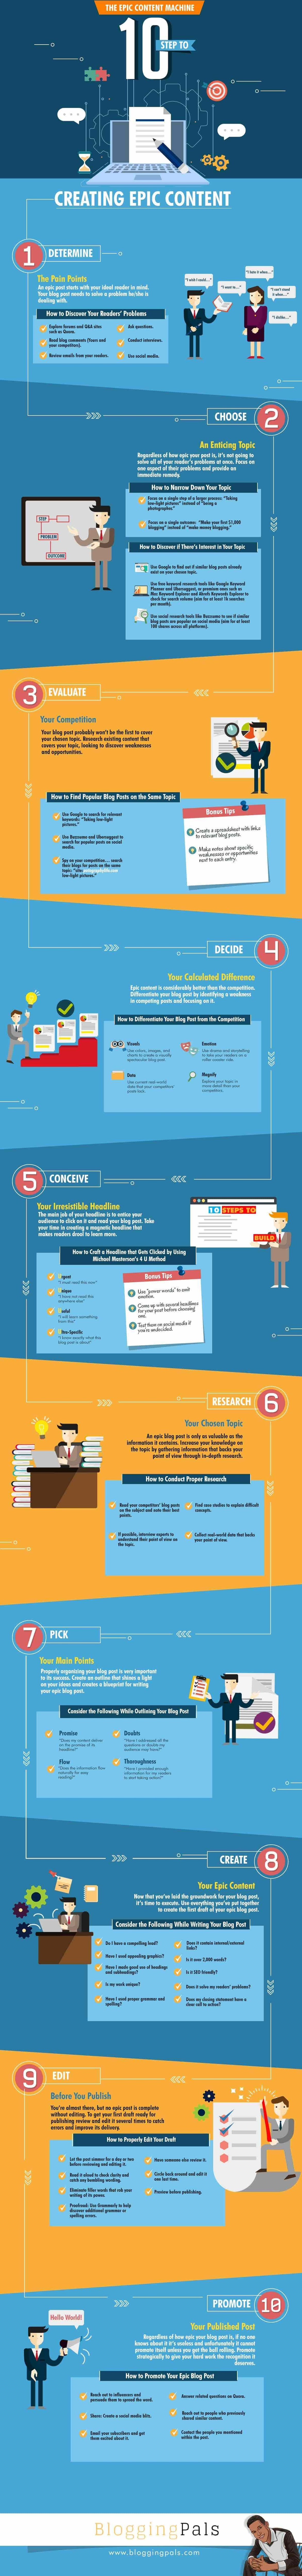 10 Steps to Generating Epic Blog Posts #infographic